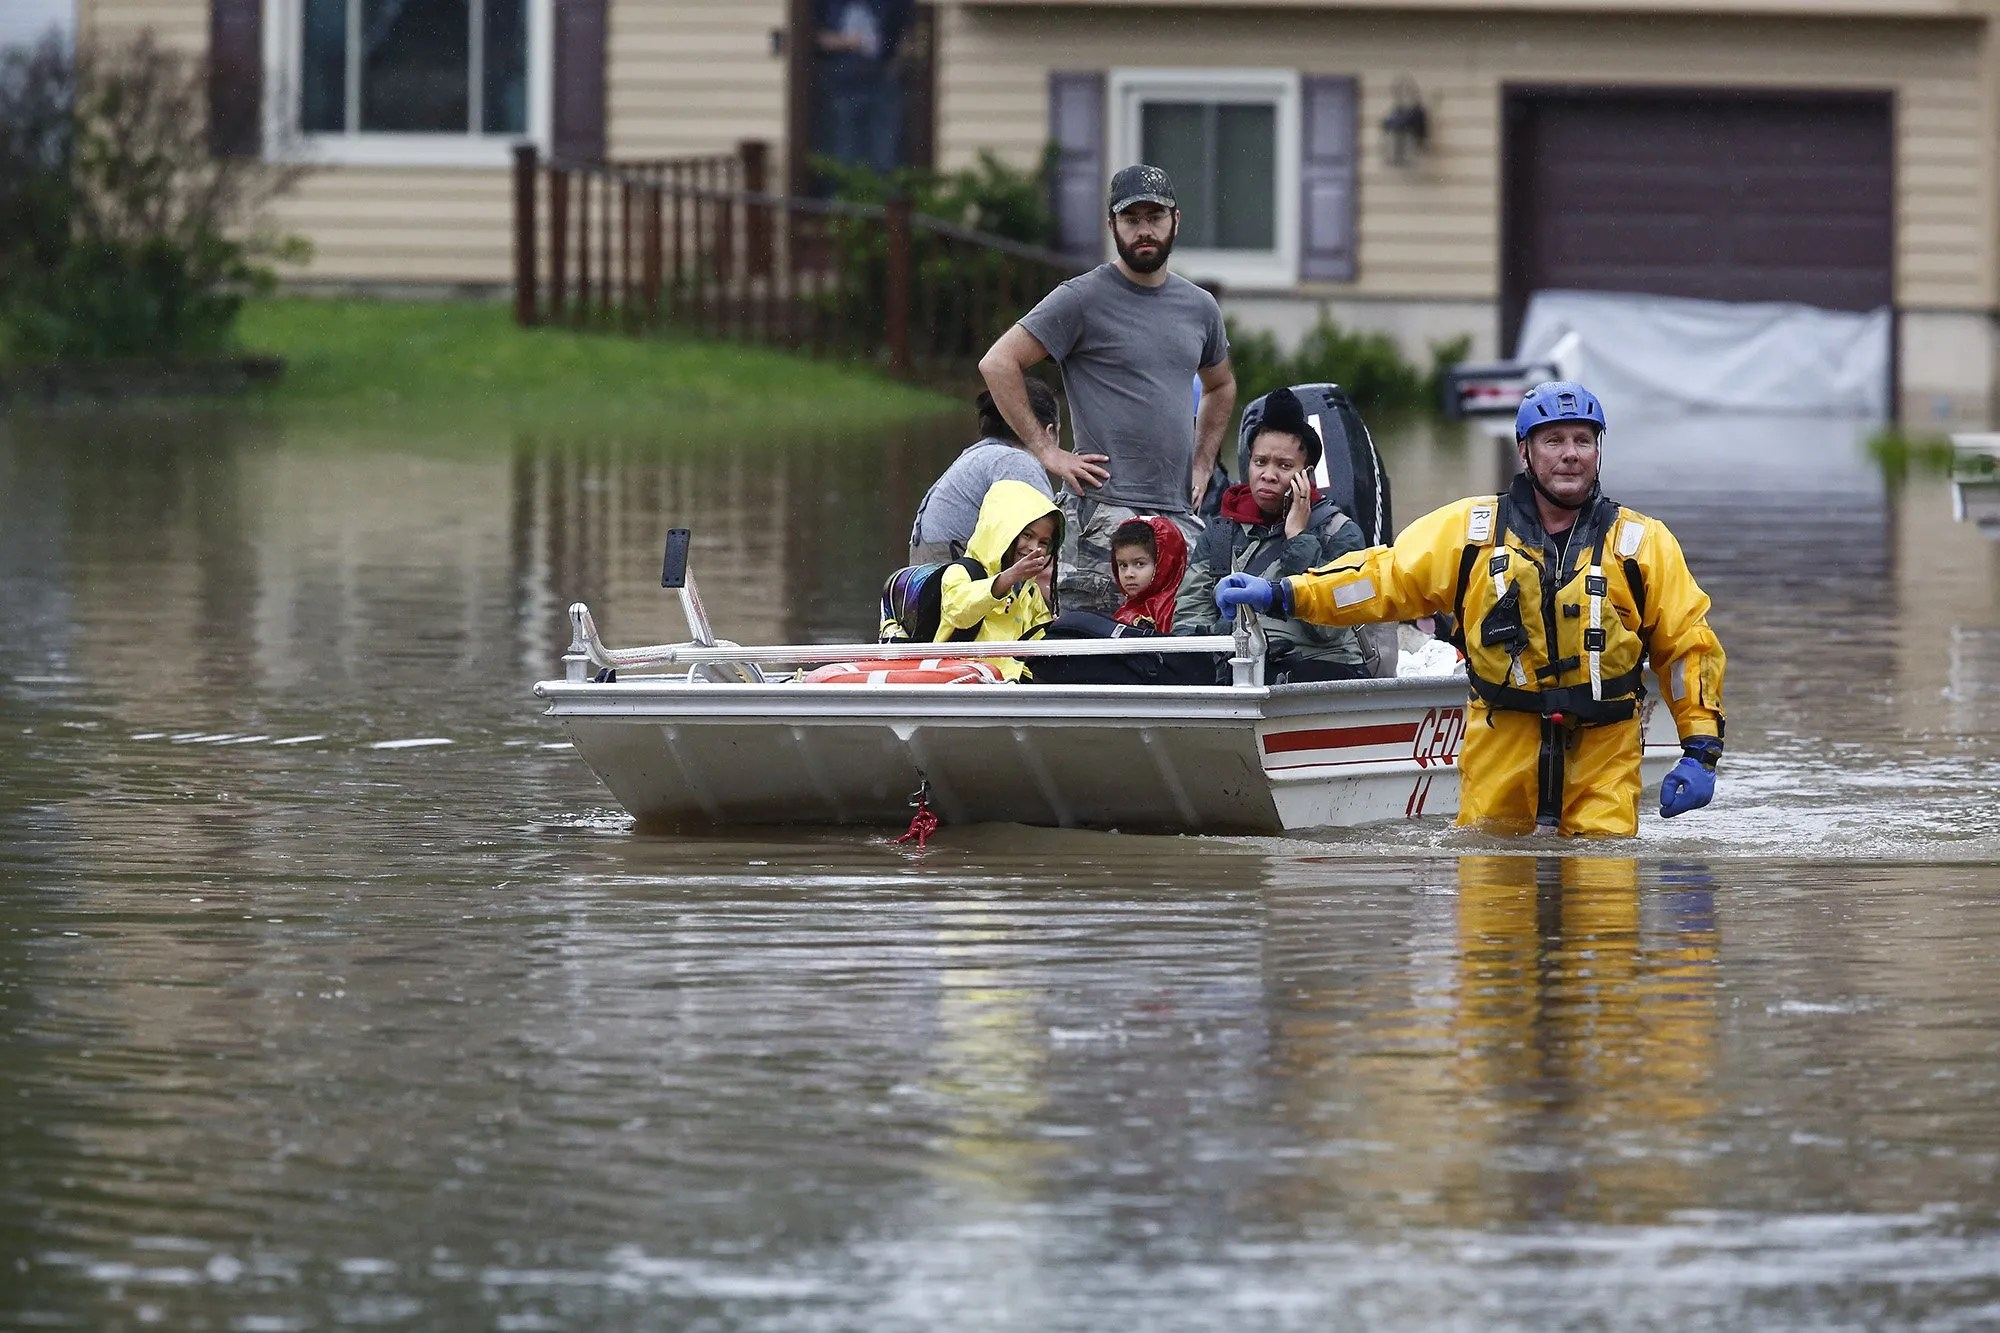 3187294f 6536 4a44 a7a6 611cb60f3182 875dq50kSiAawtUVu an6H7KbD4 Flood-prone homeowners could see major rate hikes in FEMA flood insurance changes, new study finds